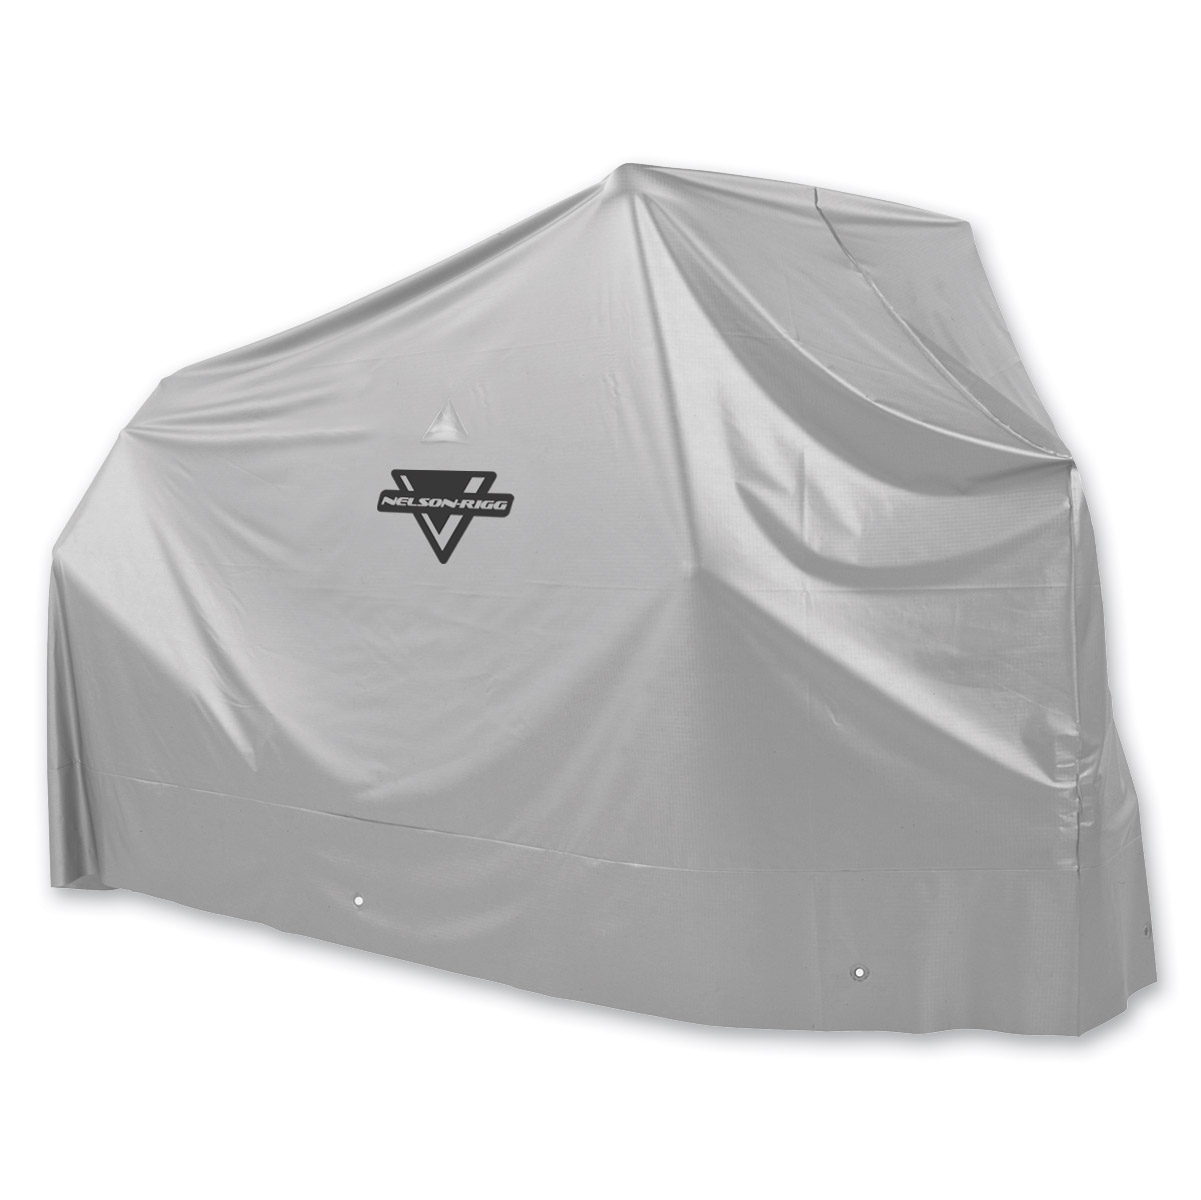 Nelson-Rigg MC-901 Motorcycle Cover